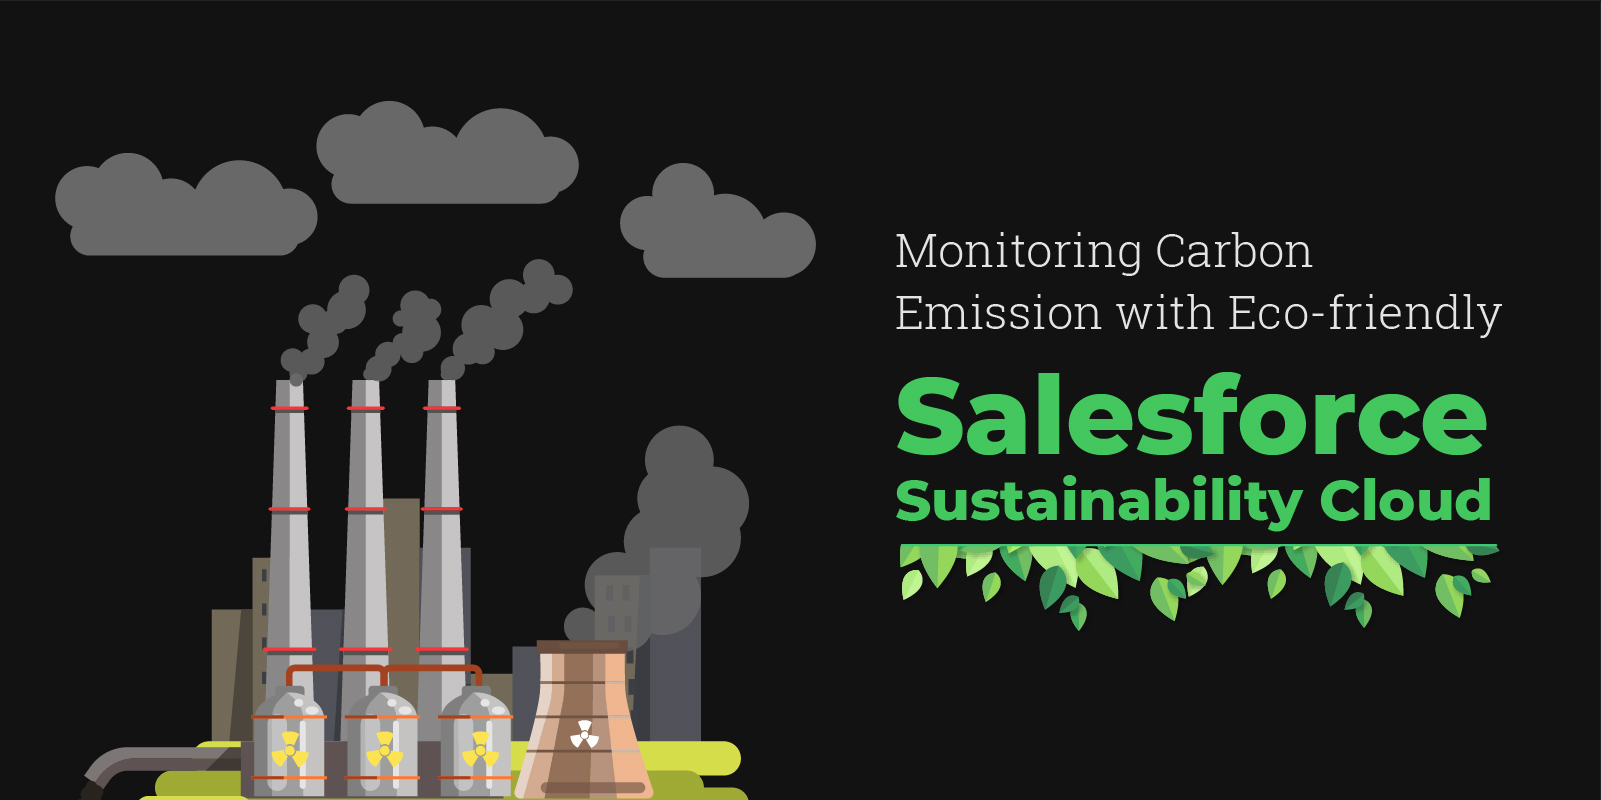 Salesforce Sustainability cloud | Most Eco-Friendly Tool in the Shed